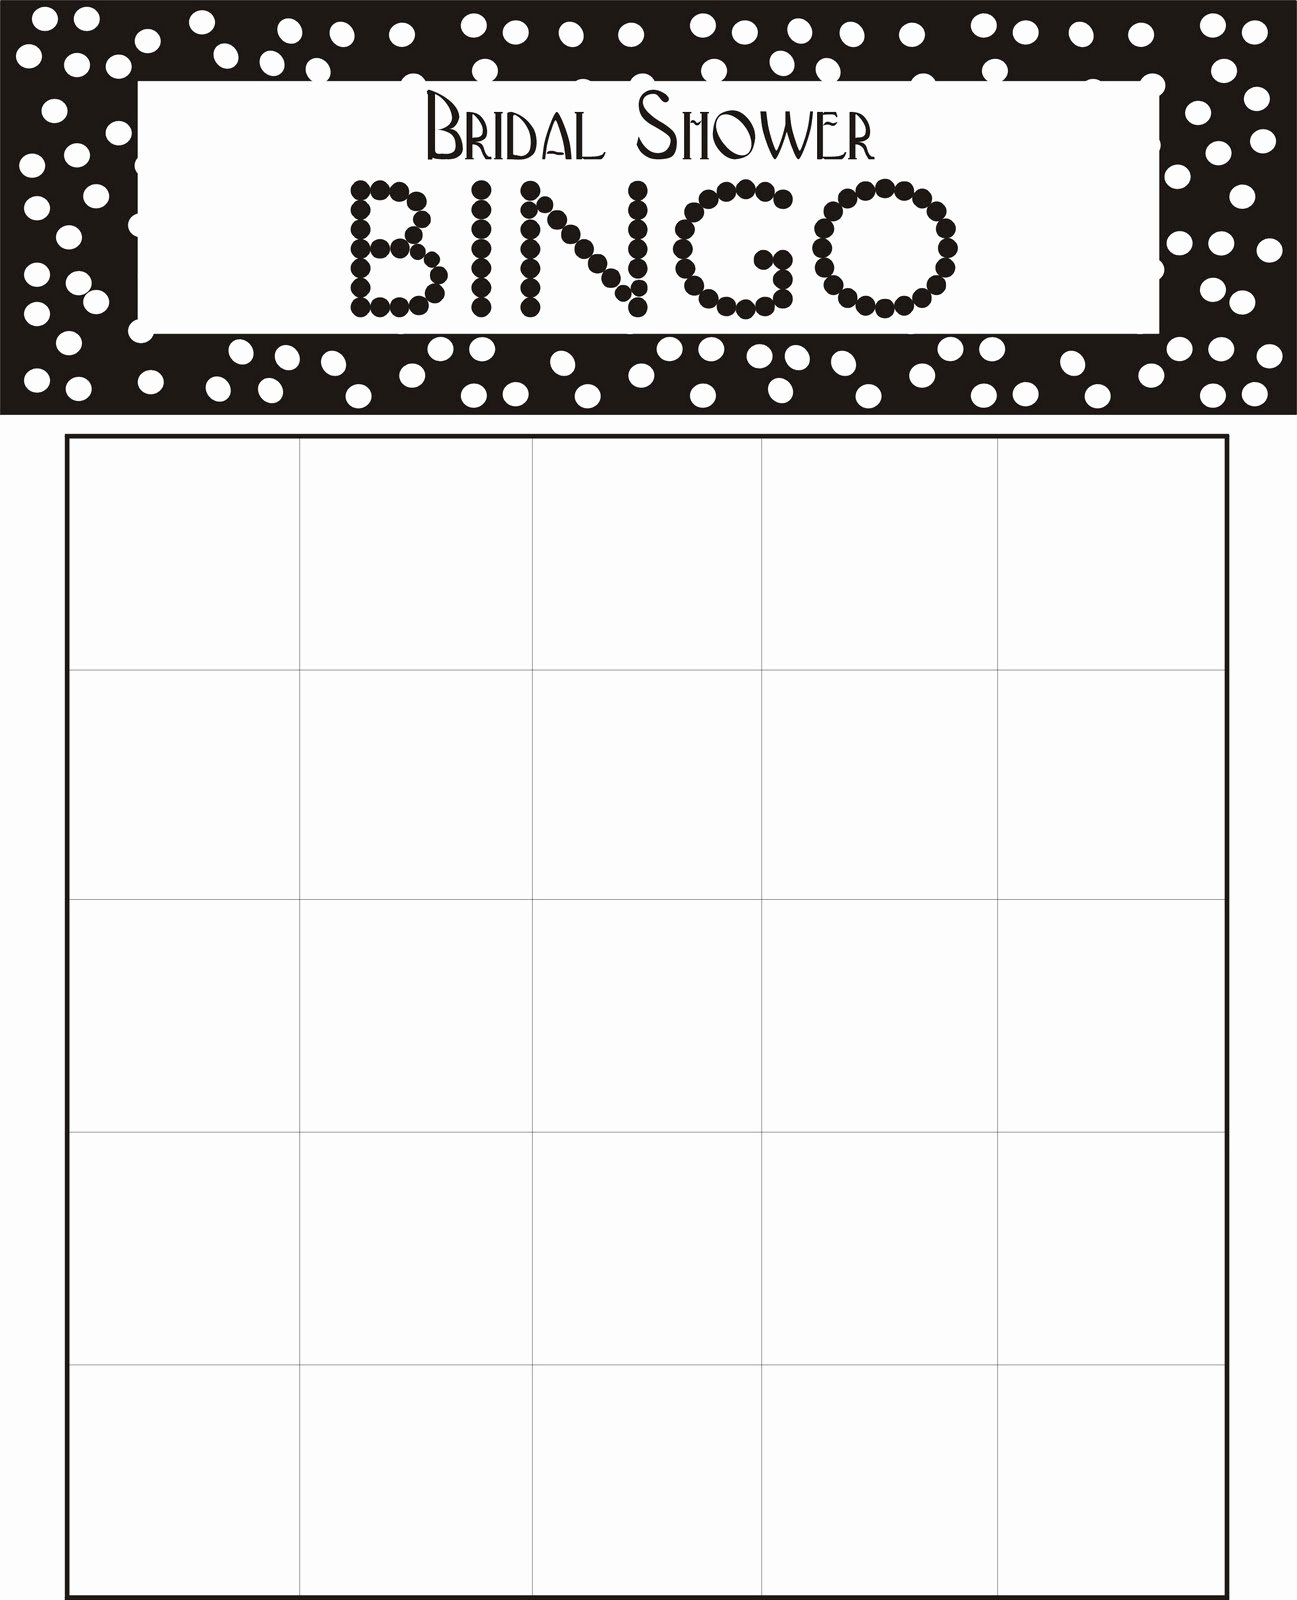 Bridal Bingo Template Beautiful Downloadable Bridal Bingo Cards – Craftbnb